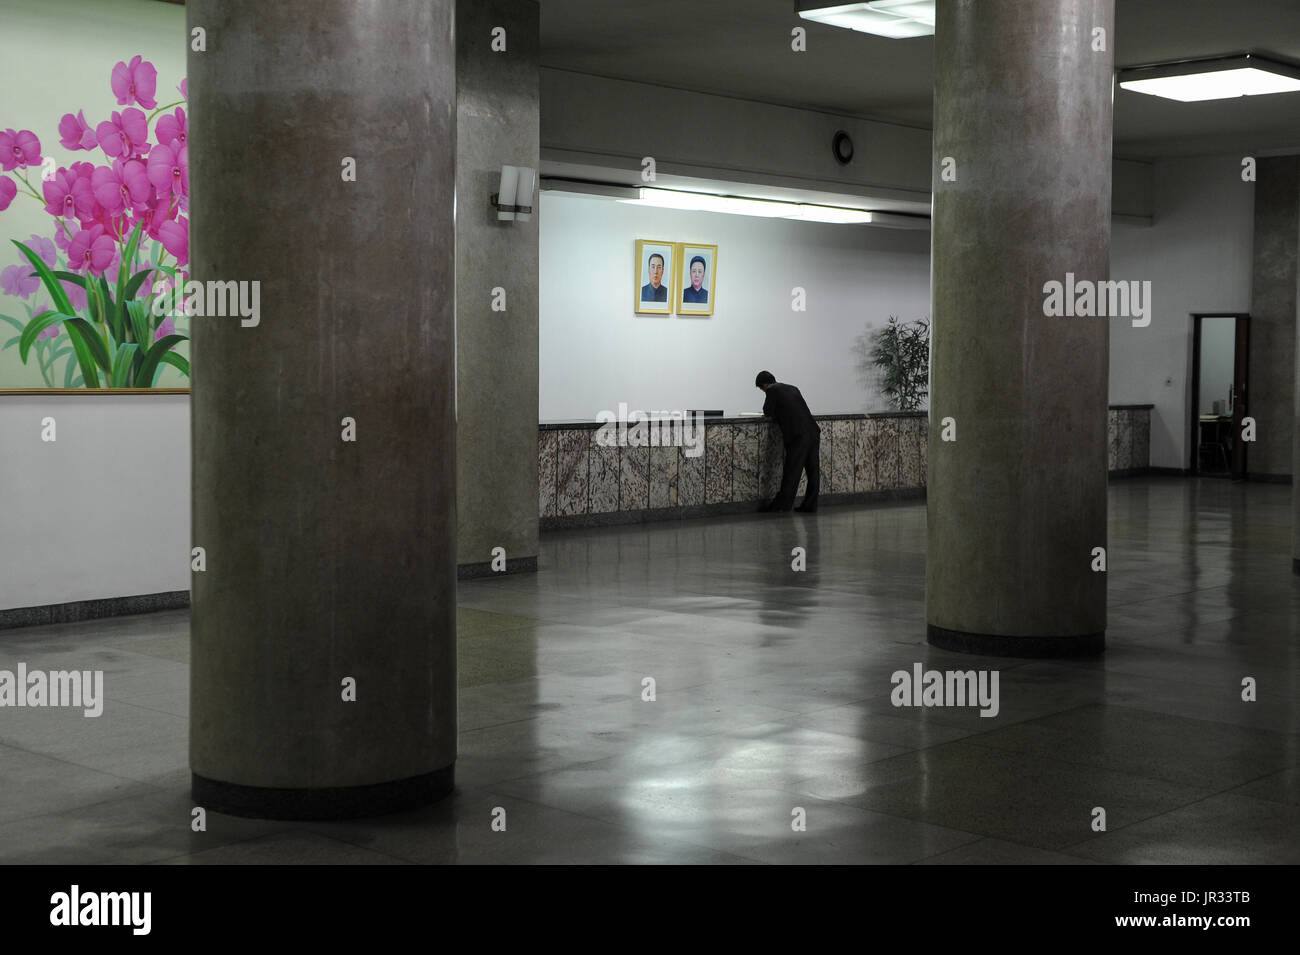 08.08.2012, Pyongyang, North Korea, Asia - A man is seen waiting at the reception inside the Grand People's Study House. - Stock Image